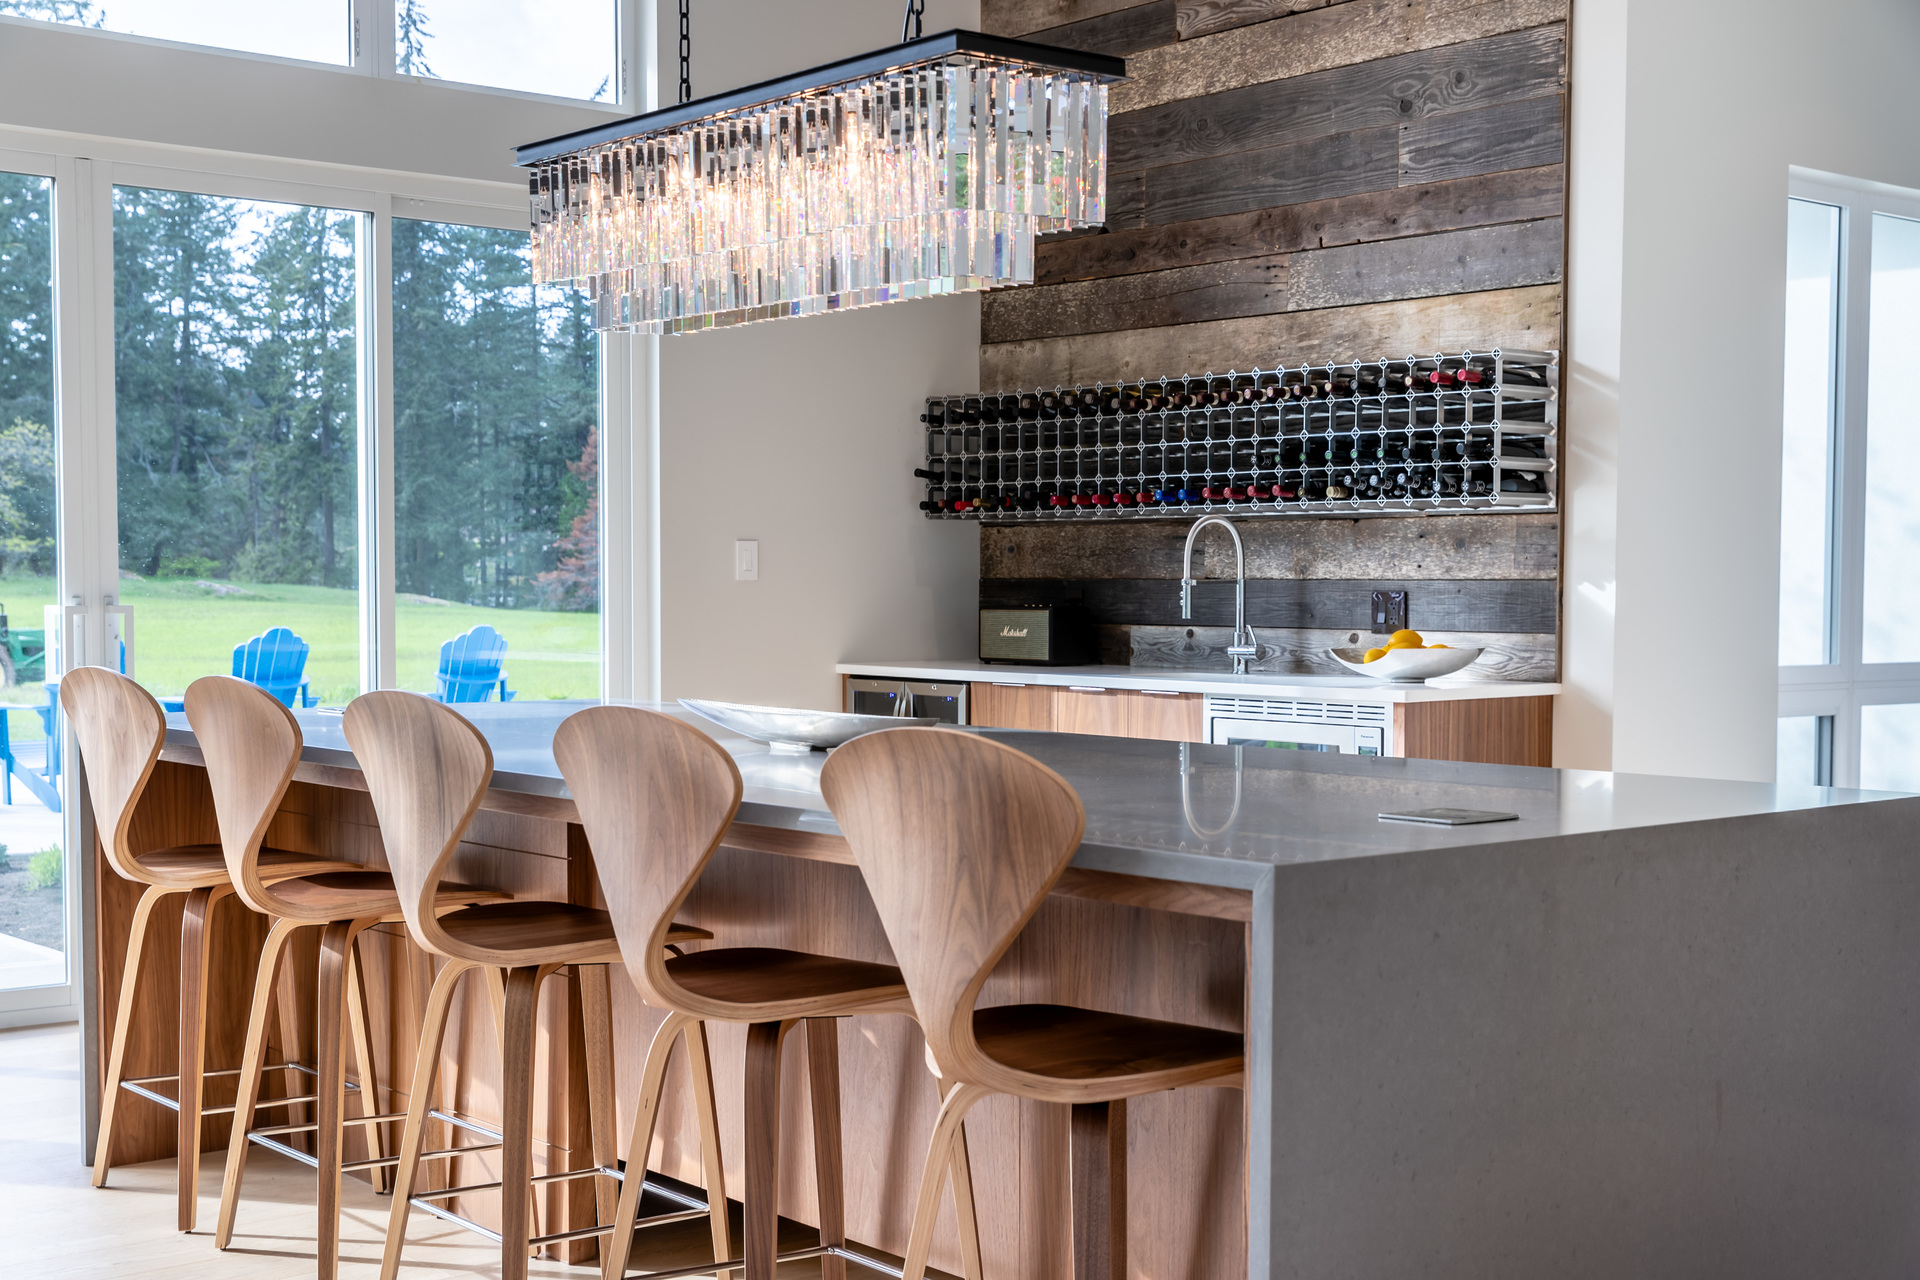 Wet Bar & Reclaimed Wood Accent Wall at 5101 Jagtar's Way, Victoria, Vancouver Island,